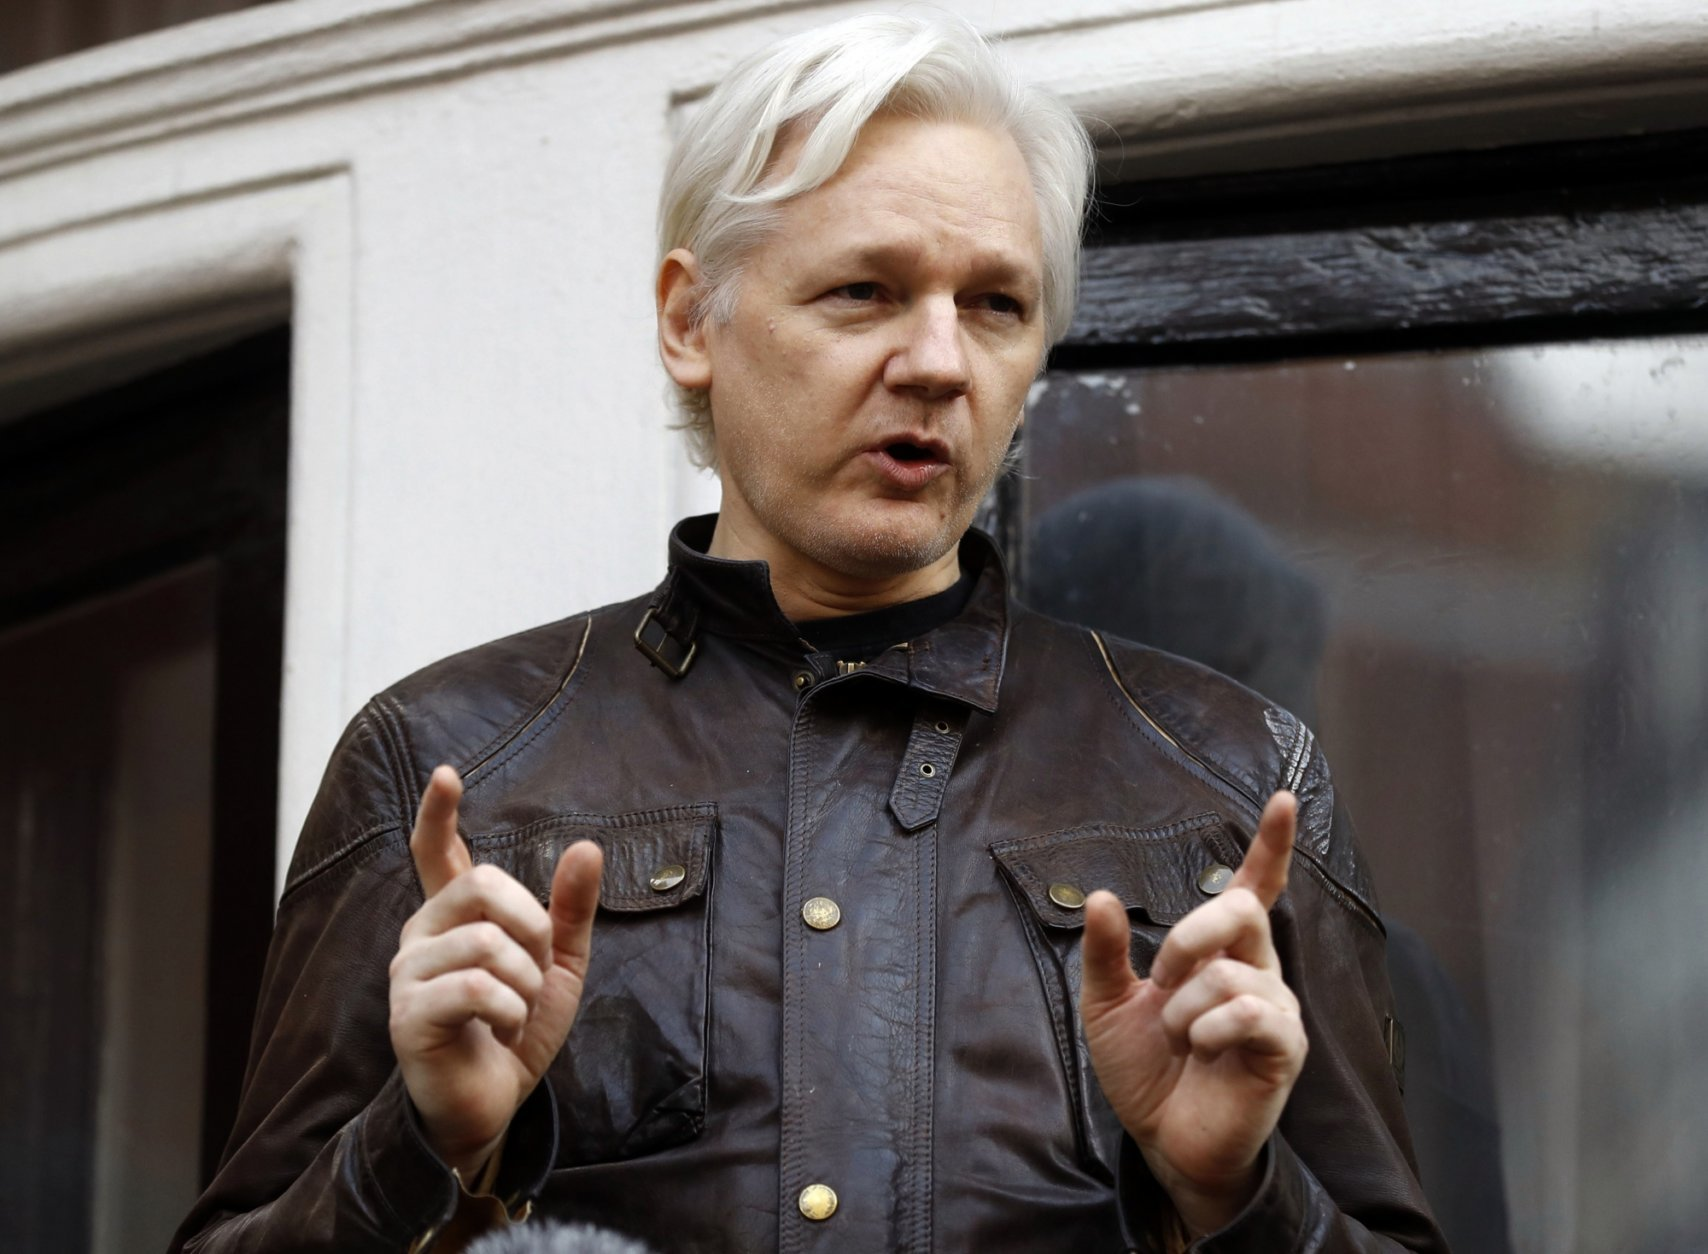 FILE - In this May 19, 2017 file photo, WikiLeaks founder Julian Assange gestures to supporters outside the Ecuadorian embassy in London, where he has been in self imposed exile since 2012.  (AP Photo/Frank Augstein, File)